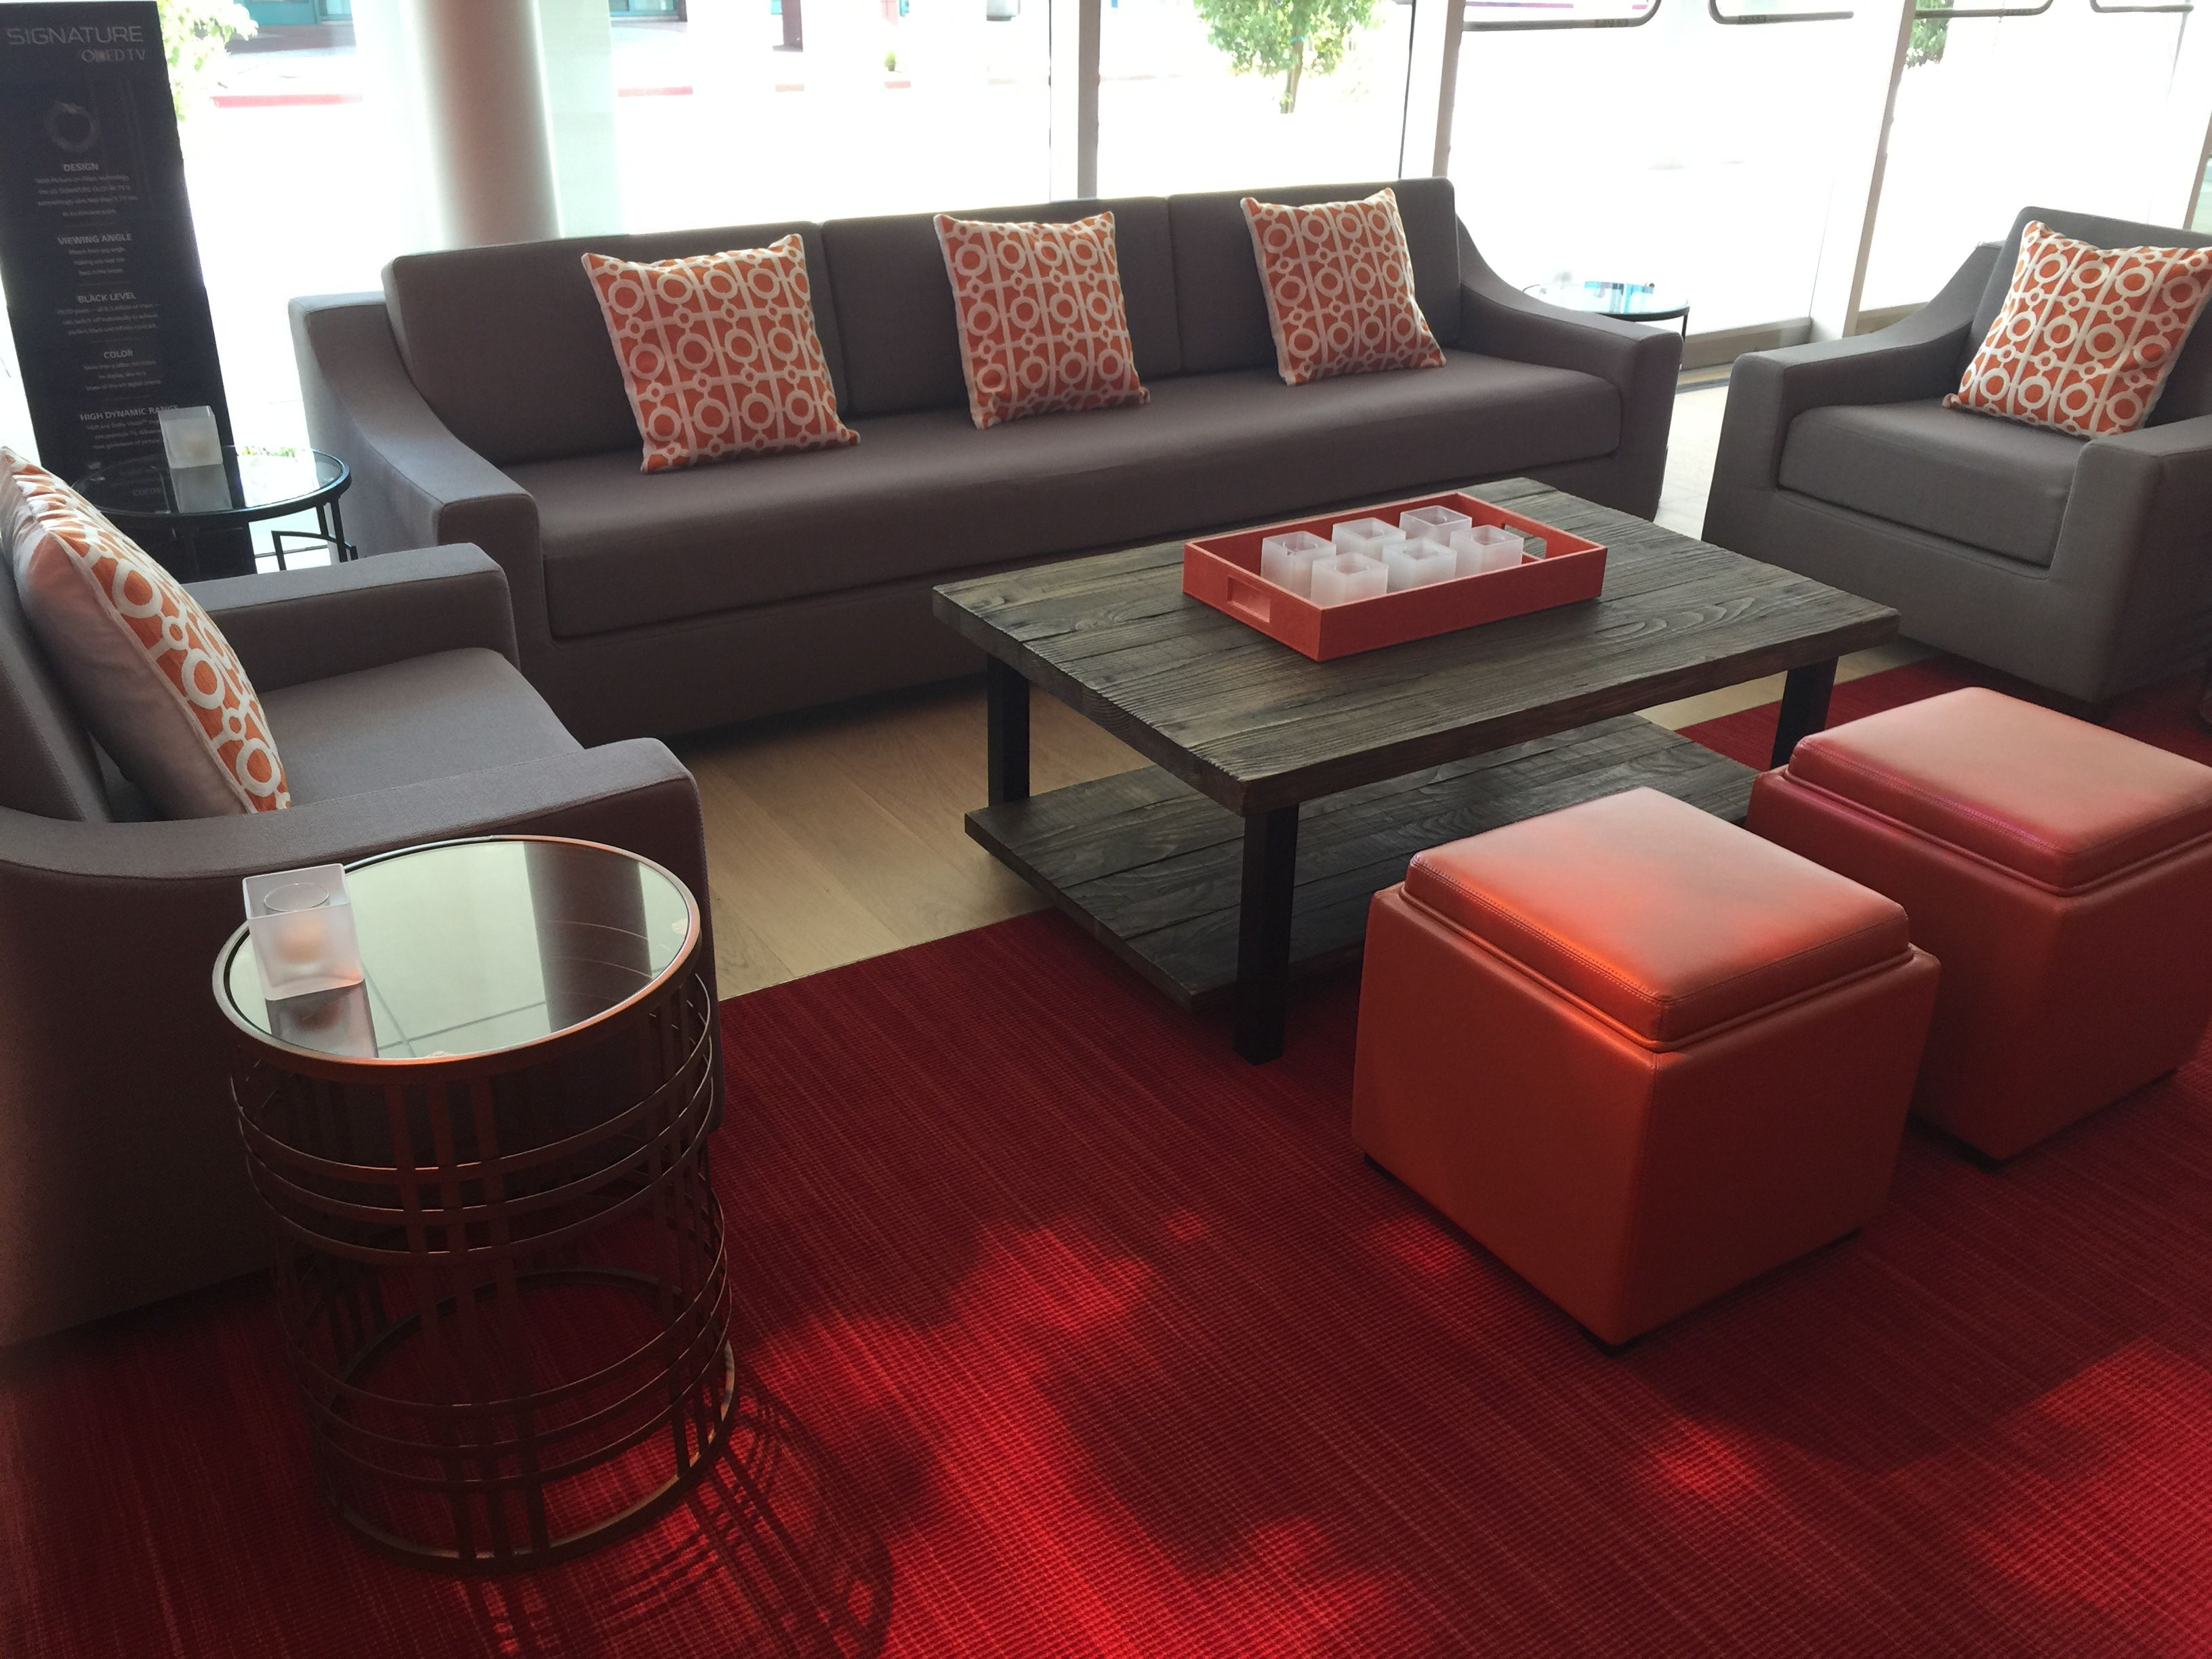 ottoman for living room%0A Pale Grey with vibrant orange accents  Pillows  Leather Ottomans  u     trays